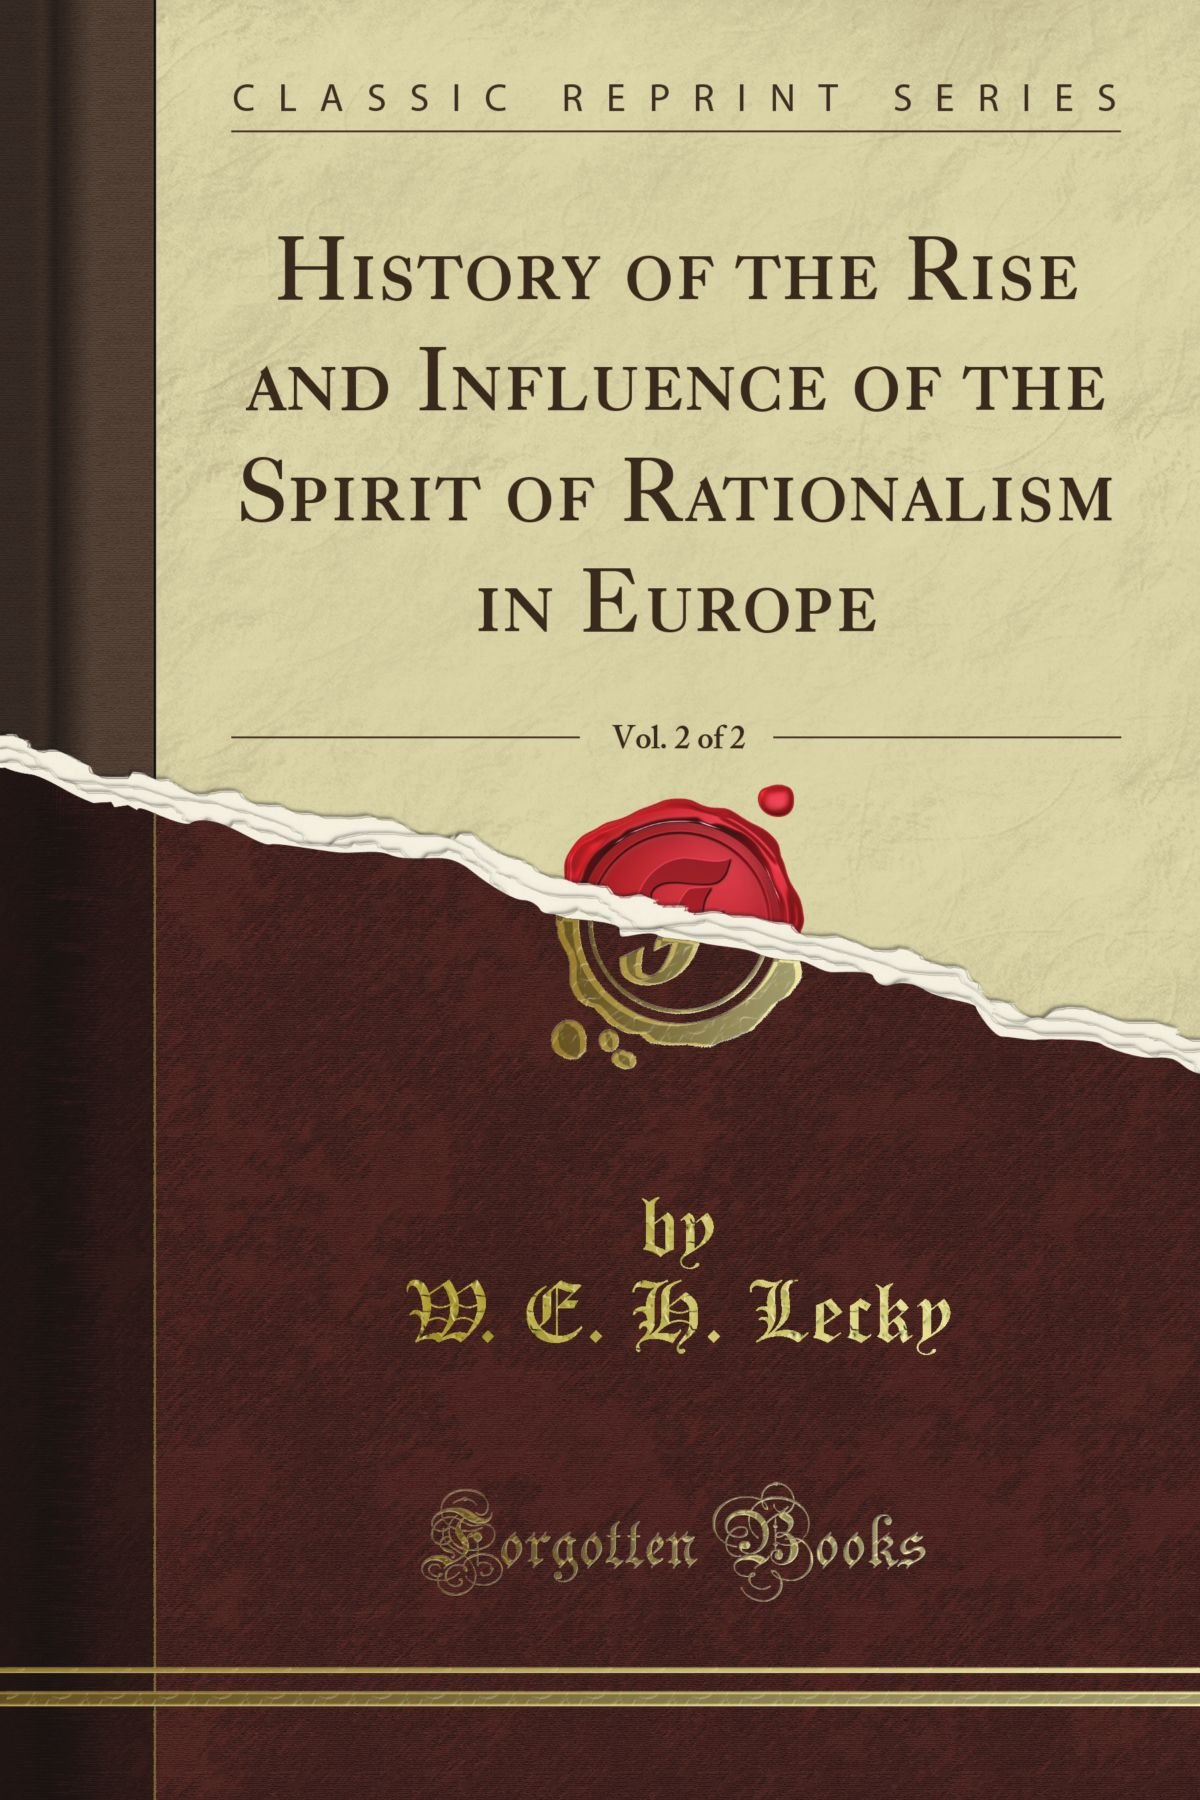 History of the Rise and Influence of the Spirit of Rationalism in Europe, Vol. 2 of 2 (Classic Reprint) ebook